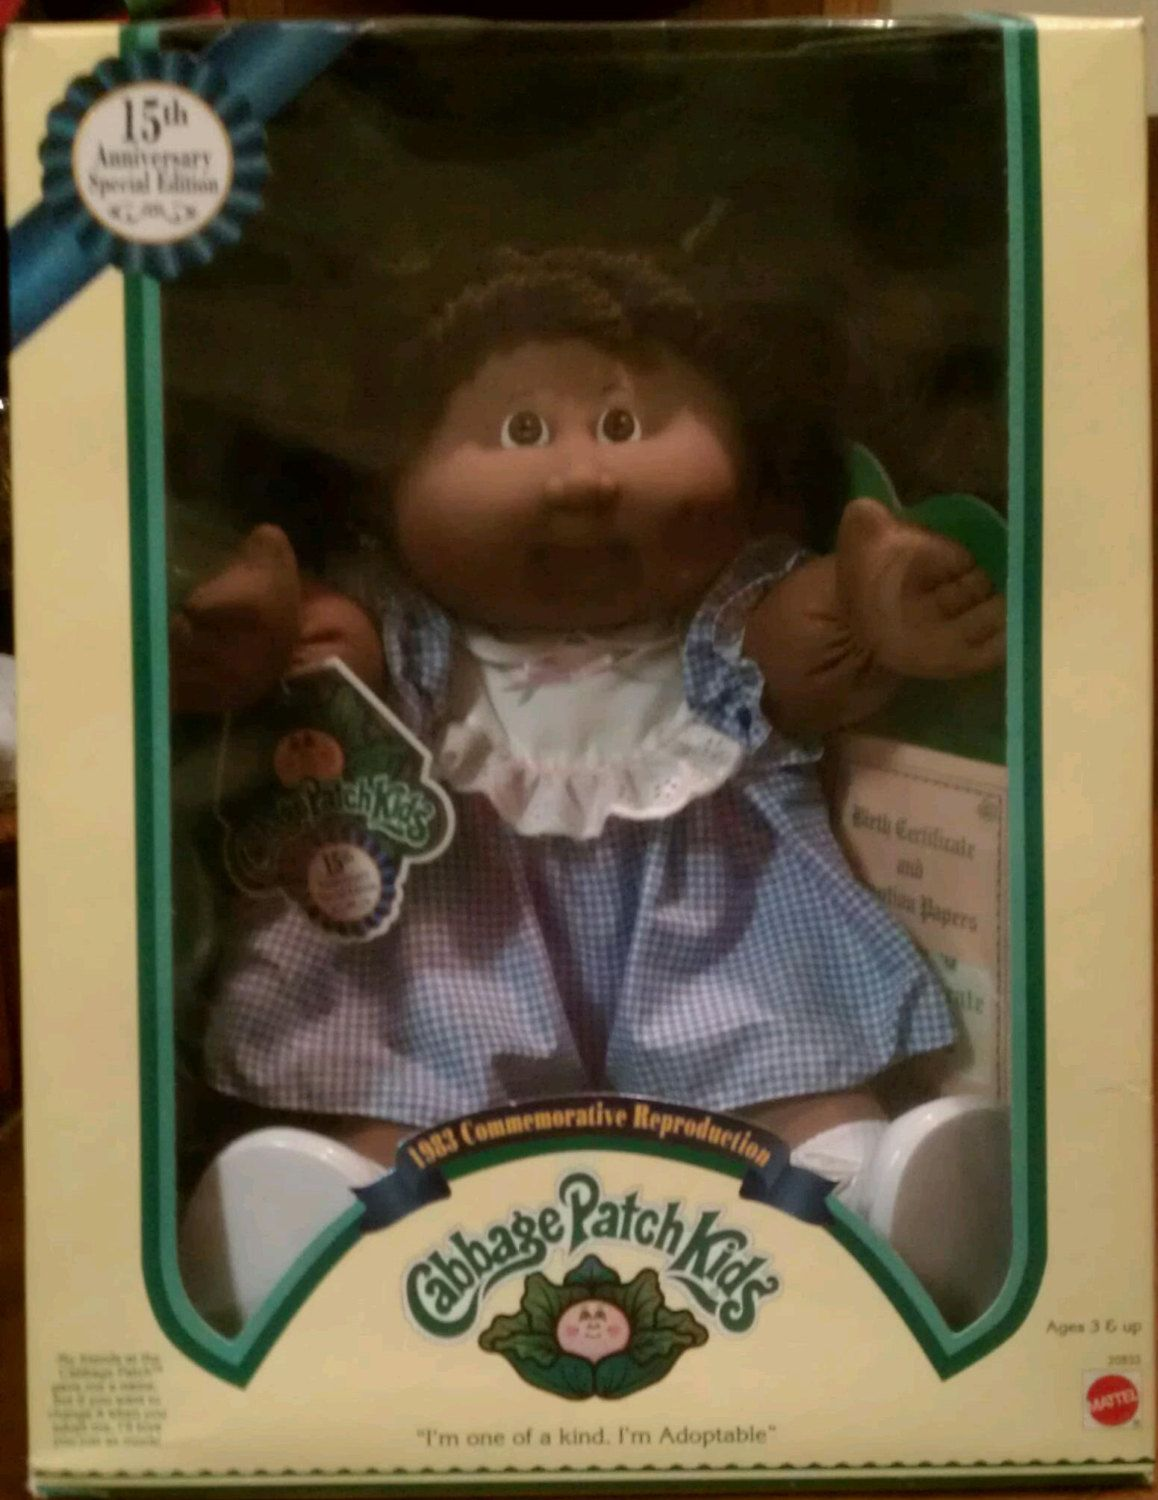 1983 15th Anniversary Special Edition By Tonyasuniquetreasure 45 00 Cabbage Patch Kids Cabbage Patch Kids Dolls 15th Anniversary